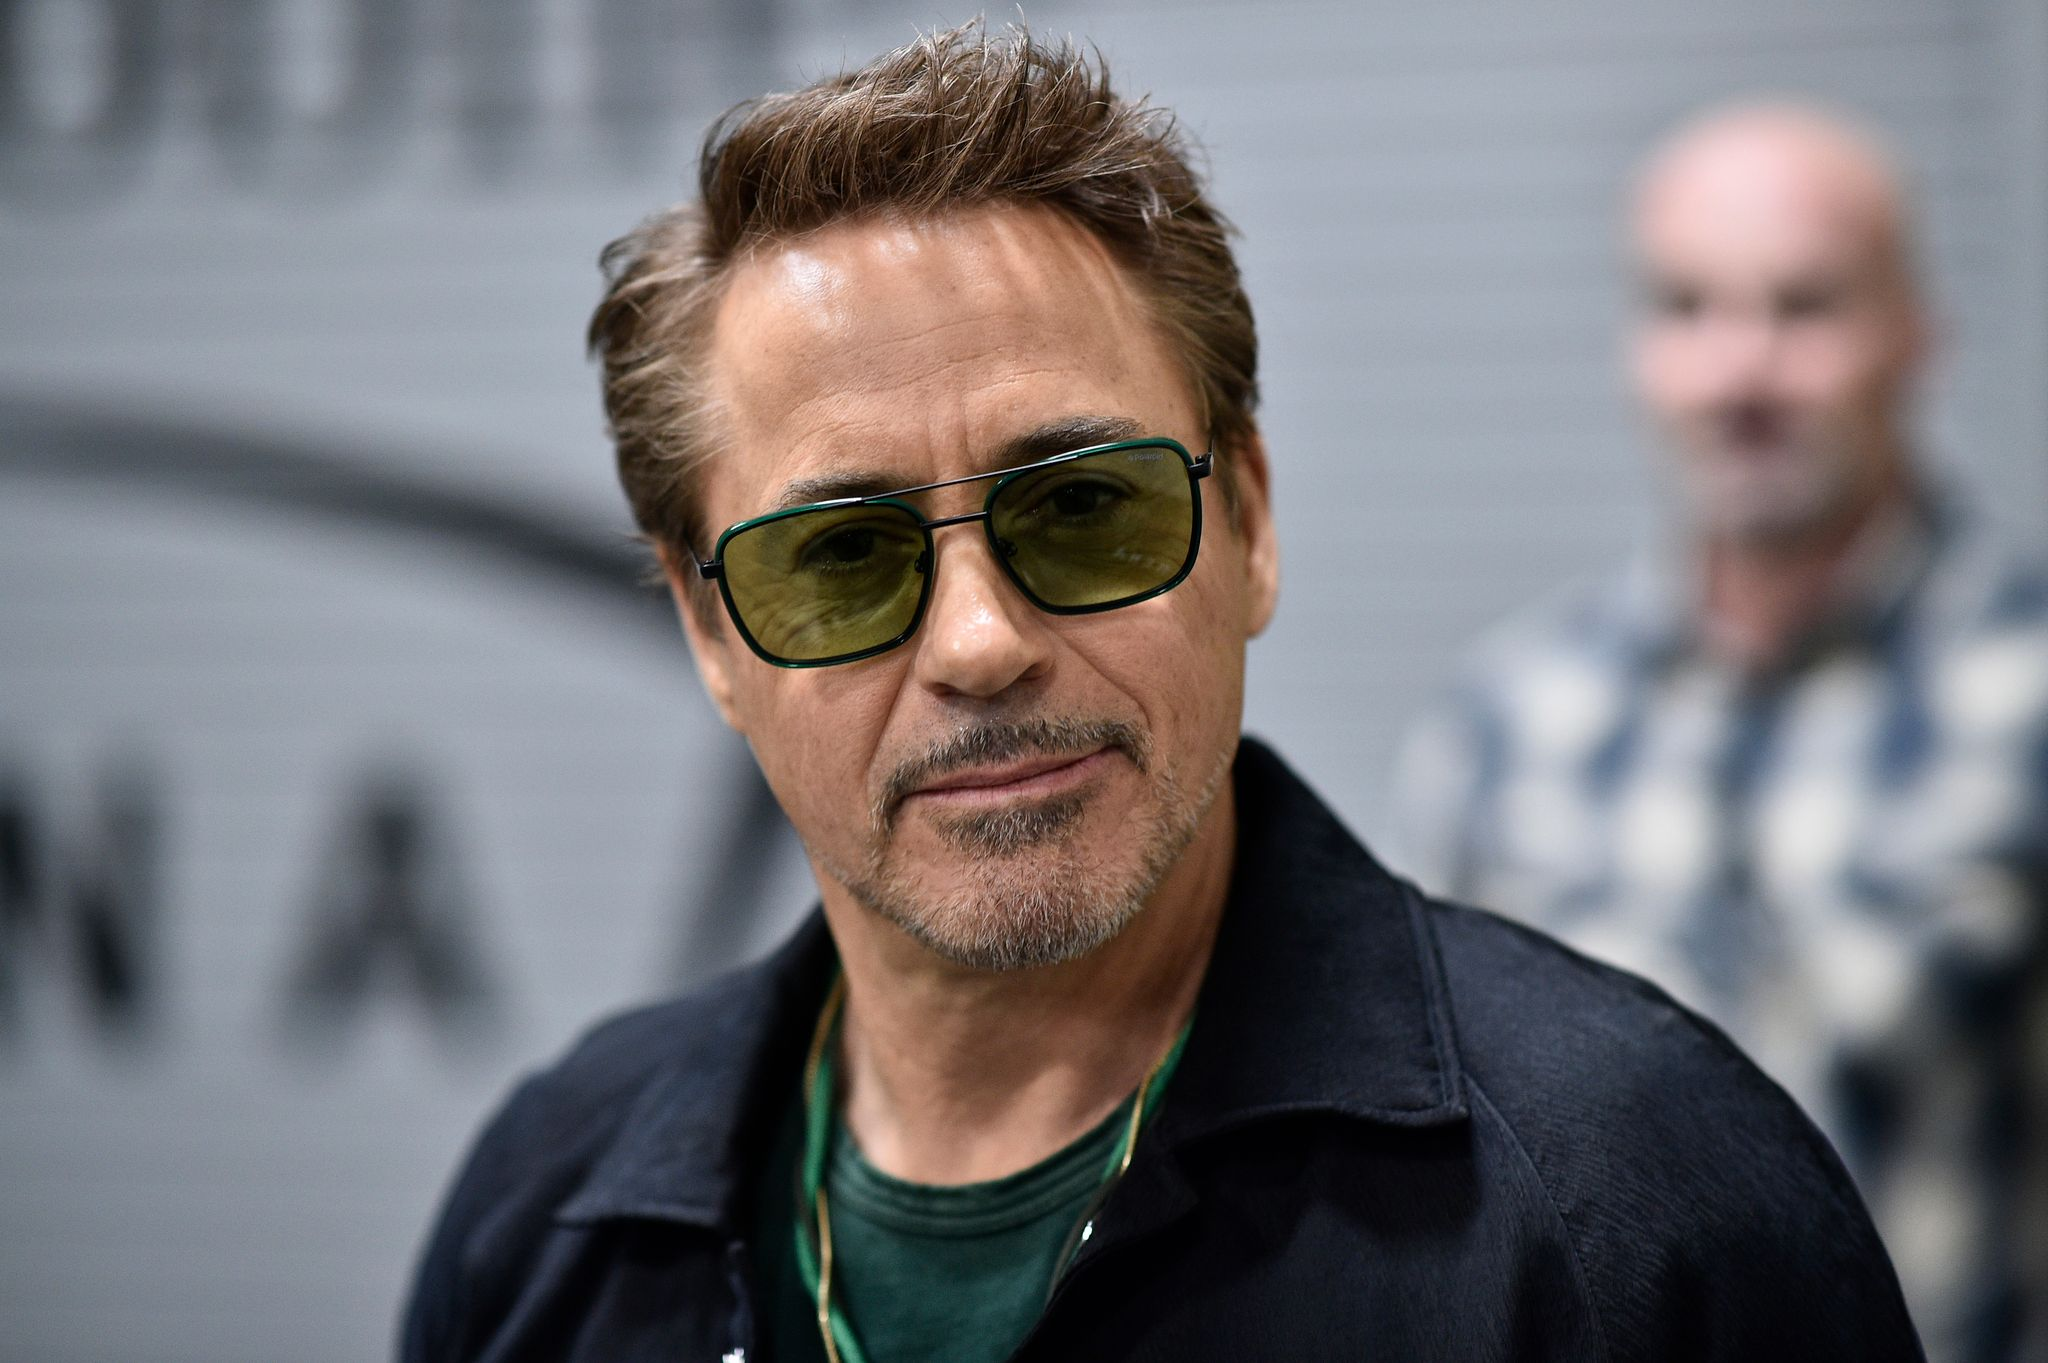 Robert Downey Jr. in 2020 in Las Vegas, Nevada | Source: Getty Images